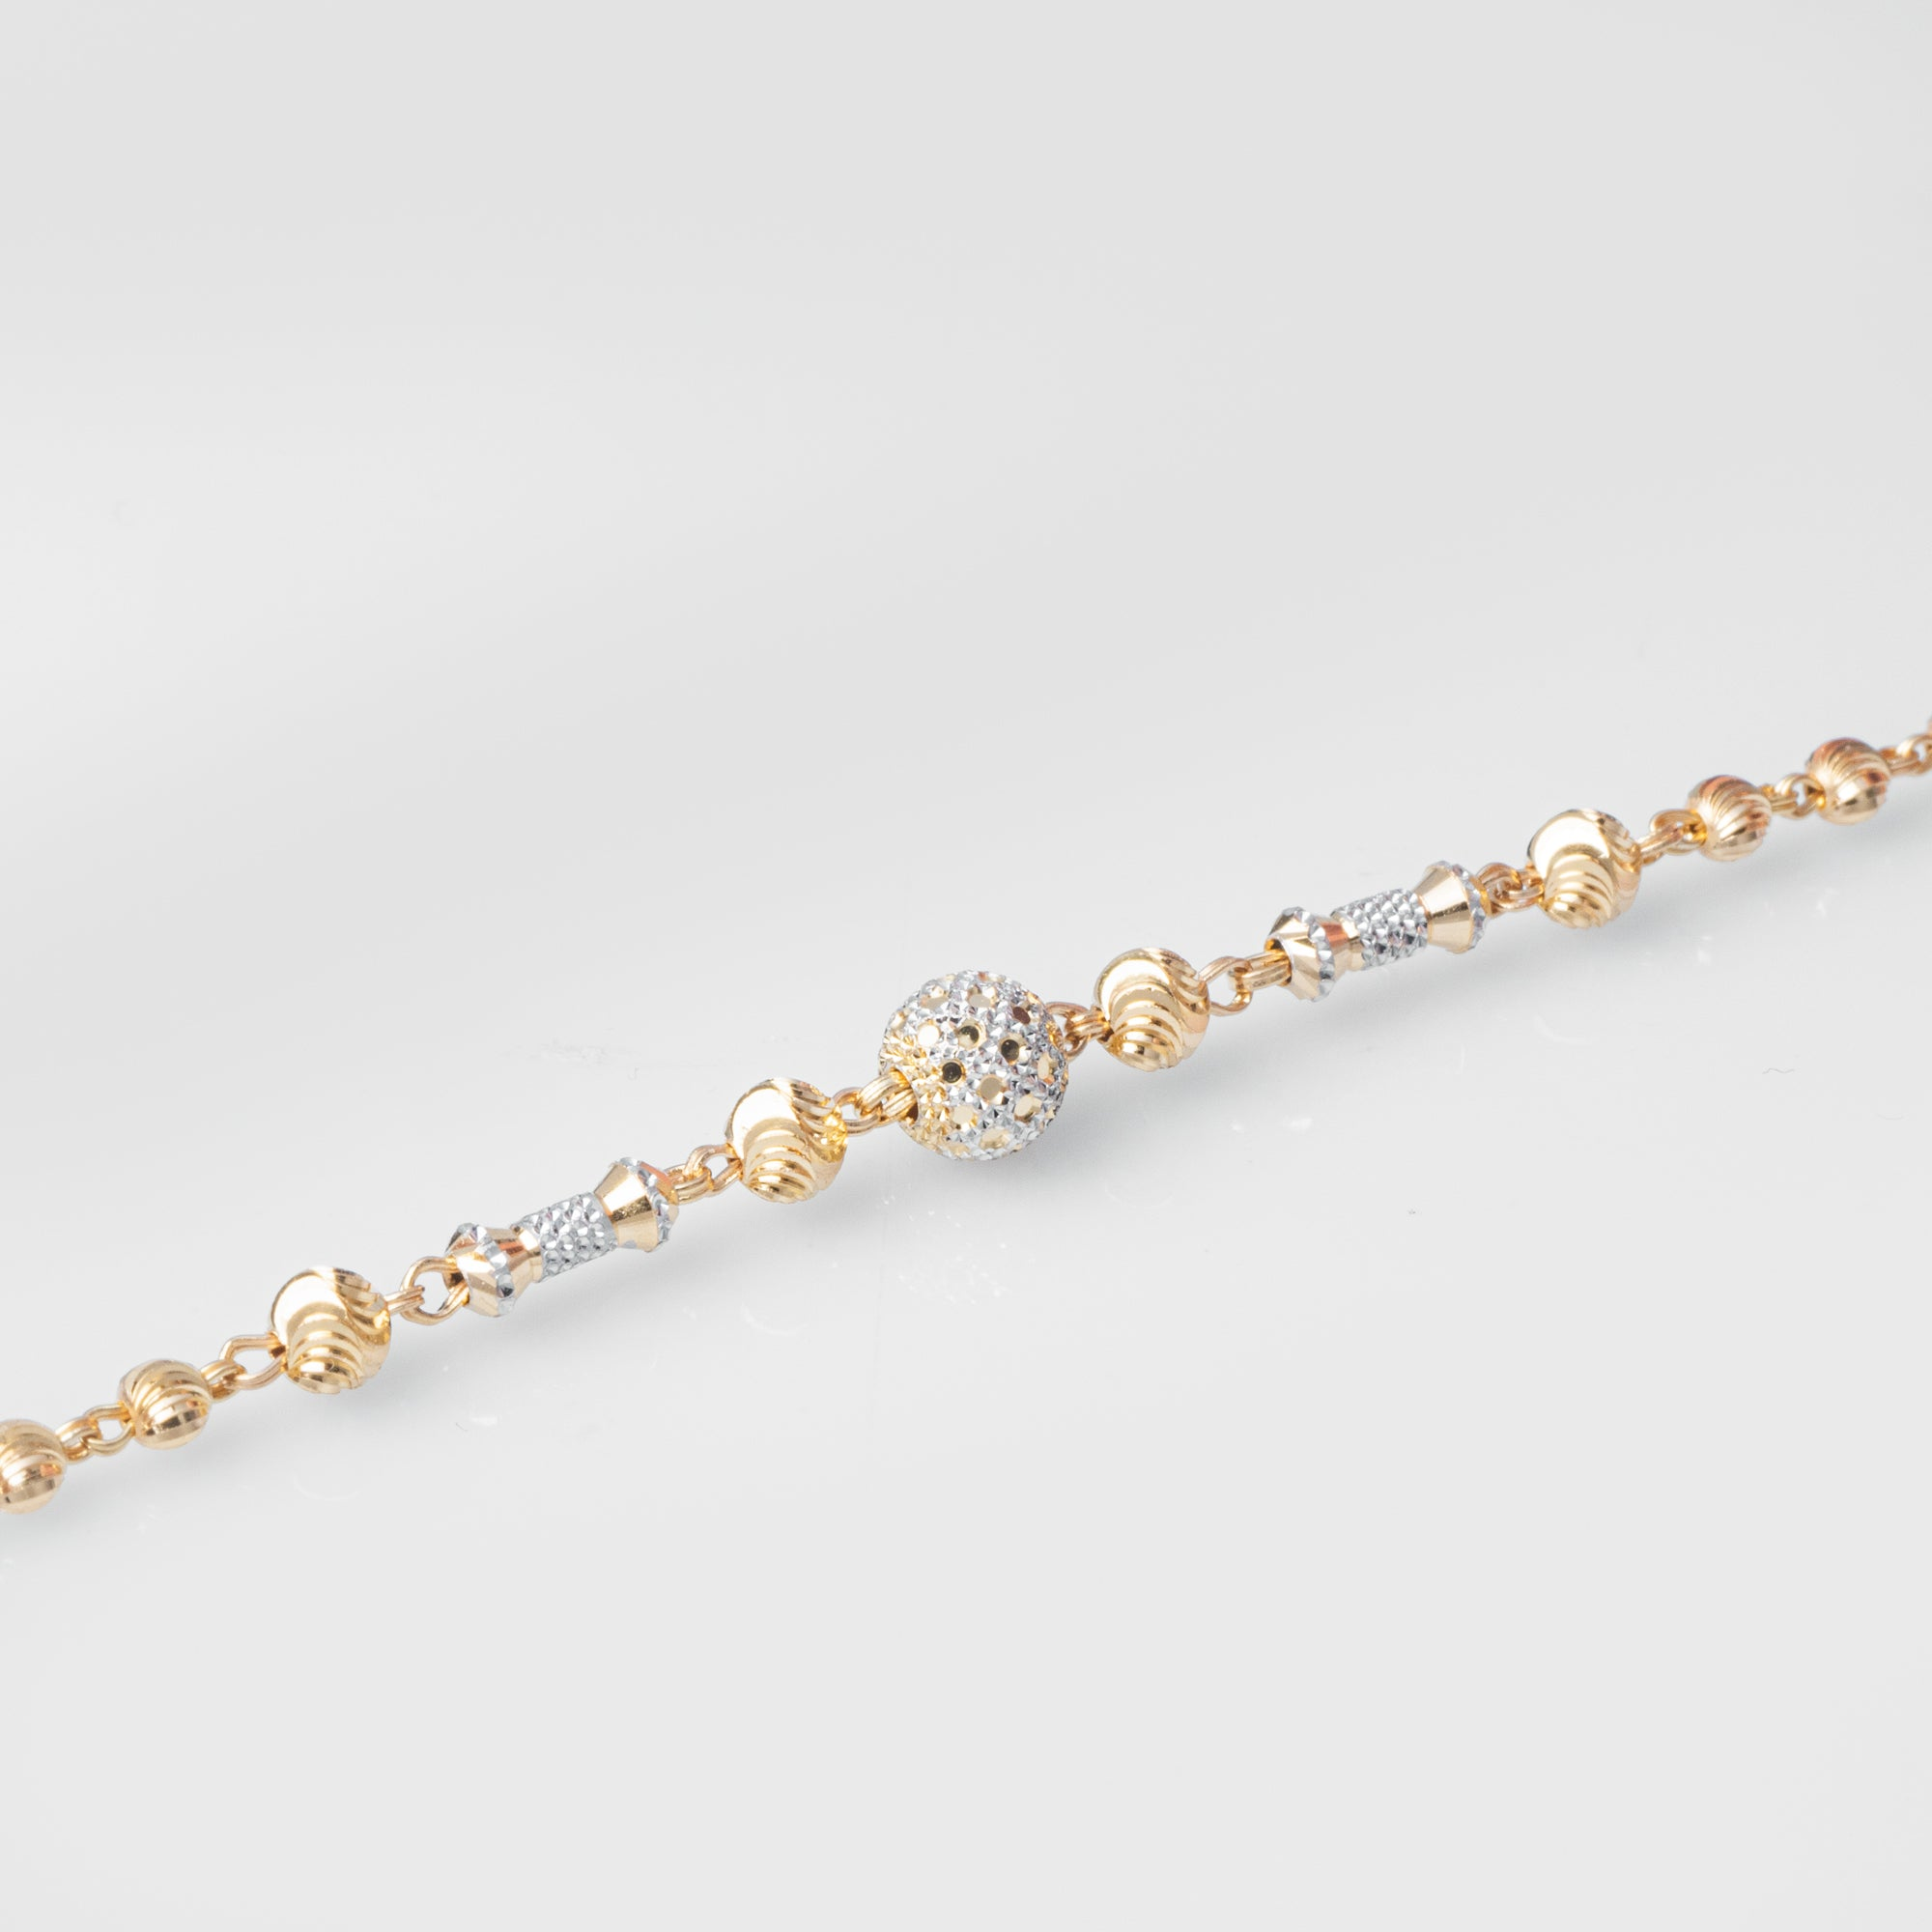 22ct Gold Diamond Cut & Rhodium Design Bracelet (5.9g) LBR-8027